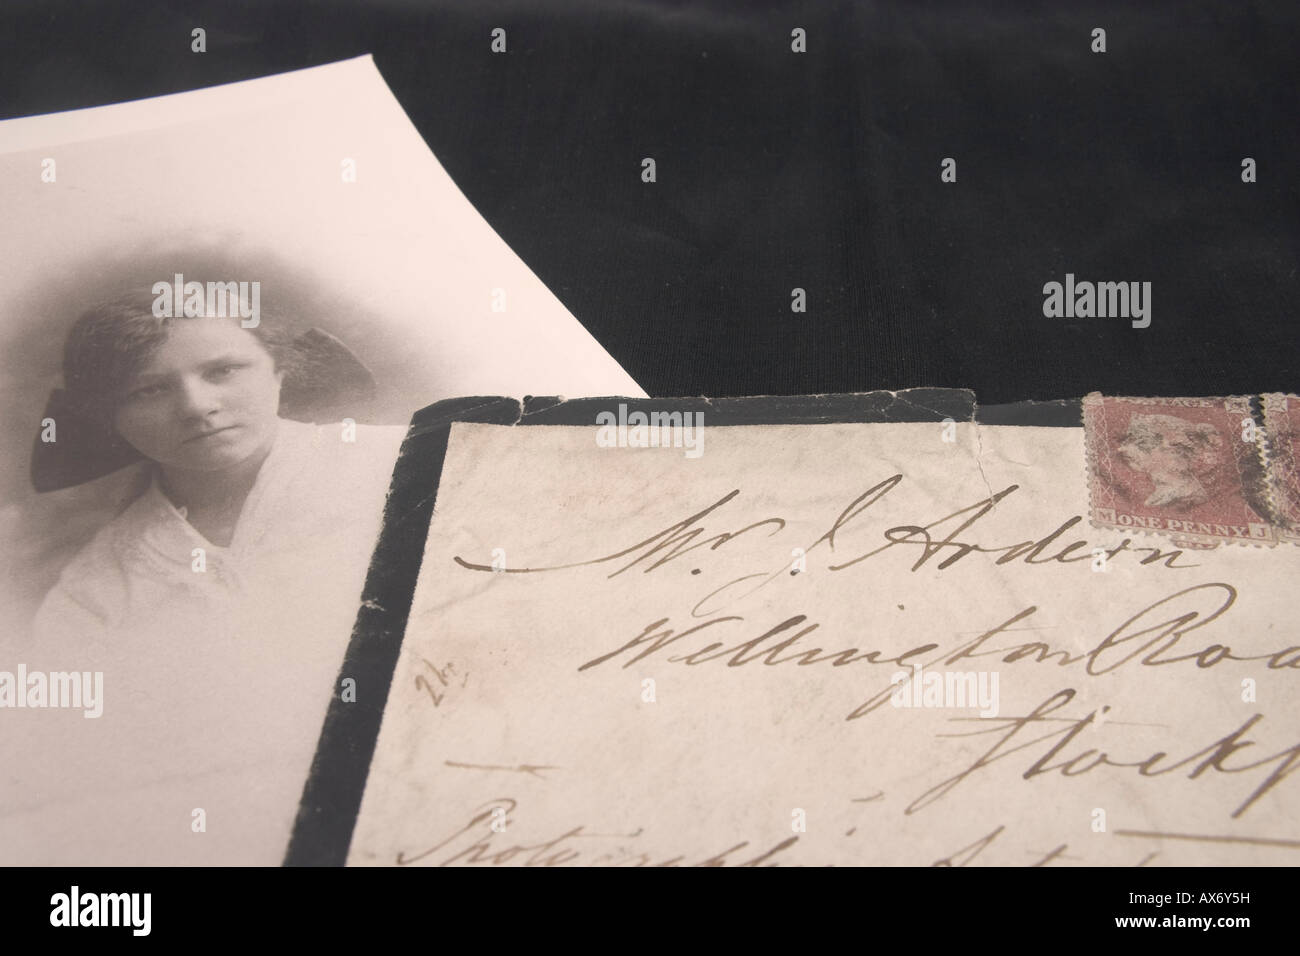 Black edged victorian letter announcing death with accompanying black and white photo - Stock Image